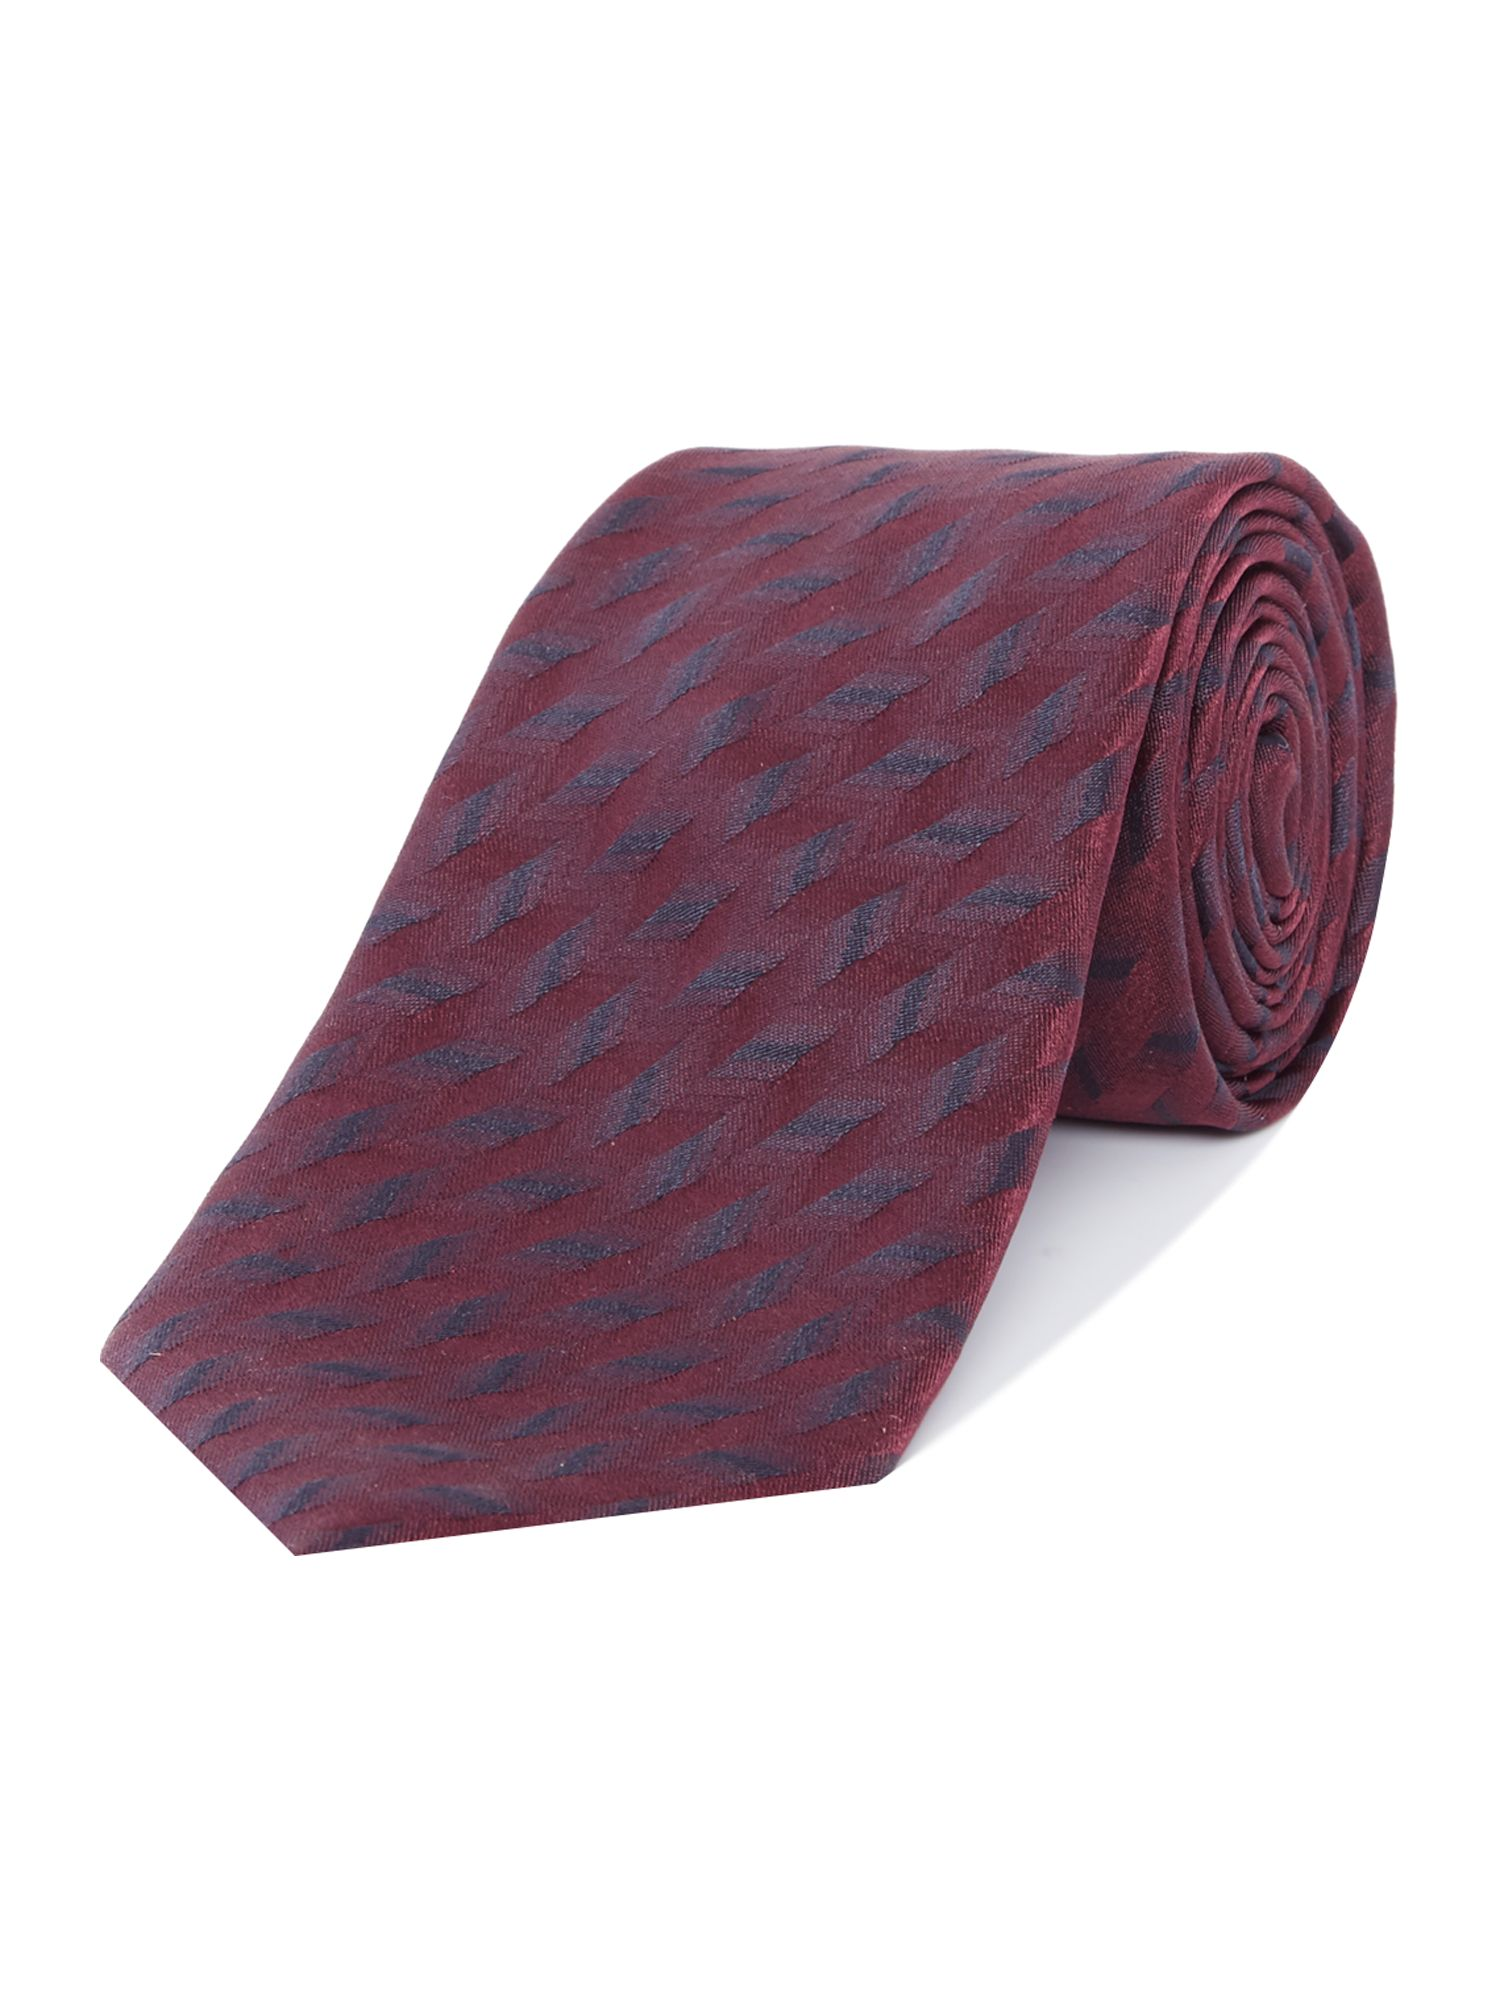 Armani Collezioni Patterned Silk Tie Bordeaux